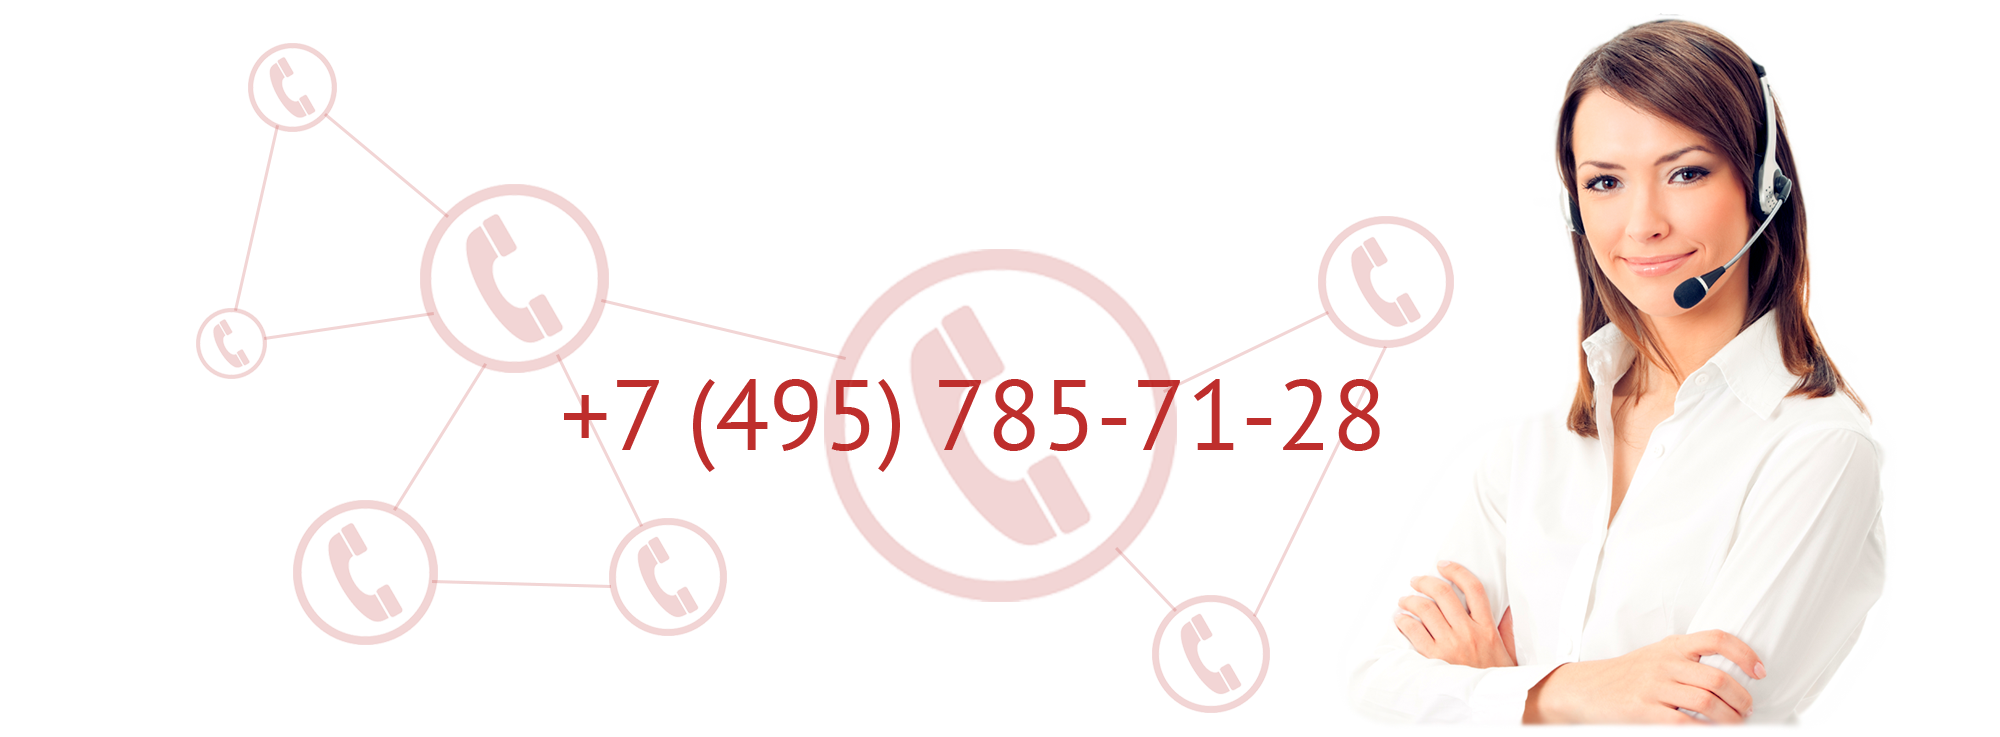 Call To Action Image